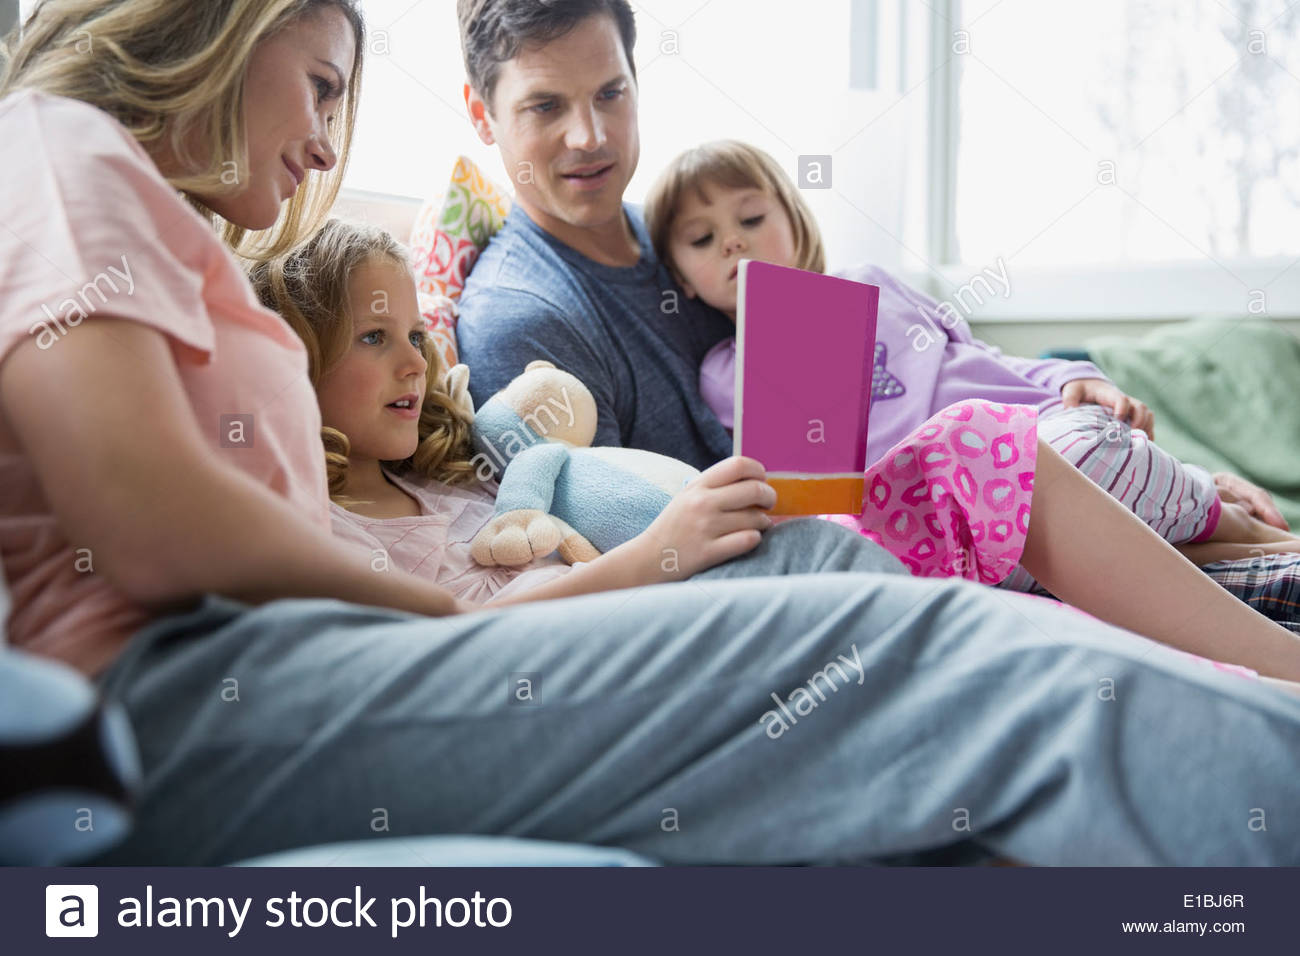 Family reading book on bed - Stock Image